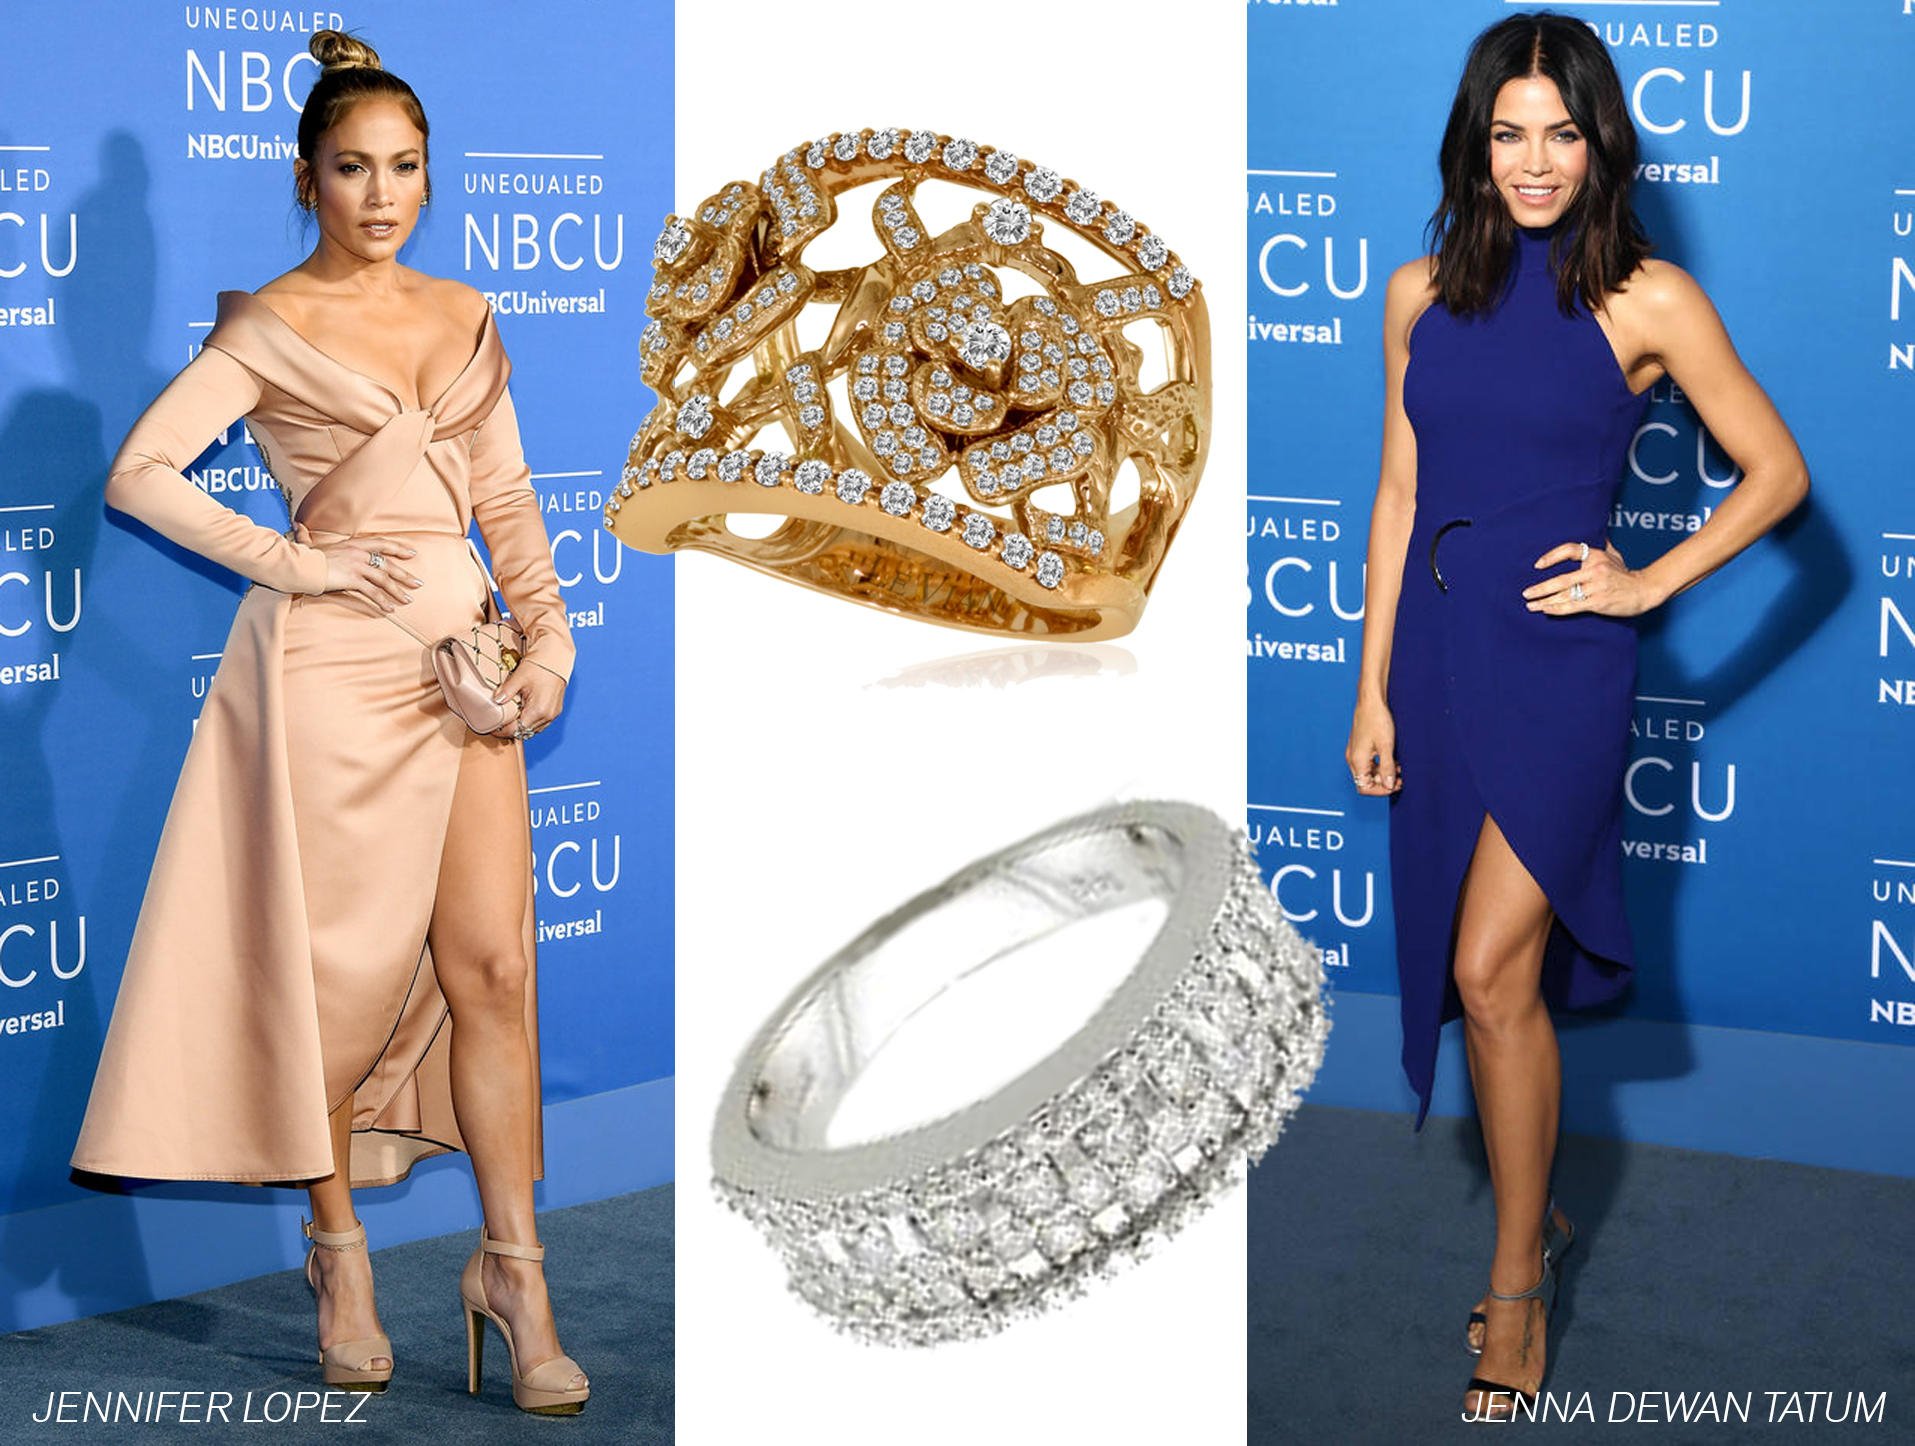 Le Vian® Rings Spotted at 2017 NBC Upfront Event in New York City